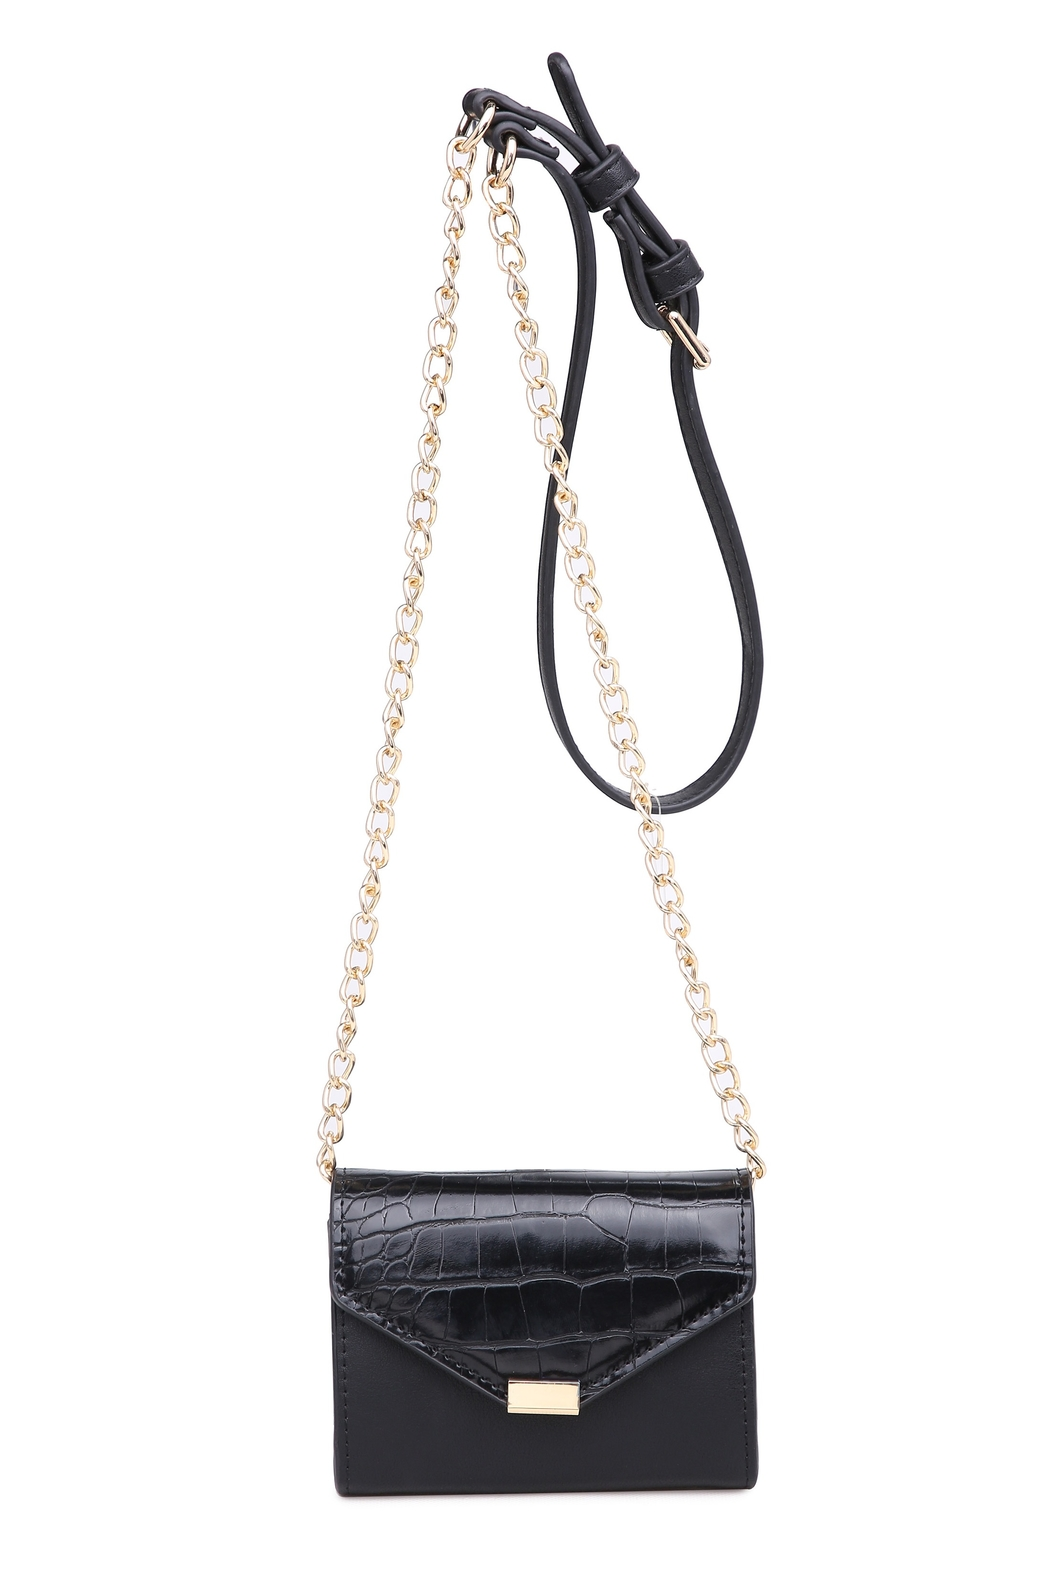 Urban Expressions Jasmine Mini Wallet Crossbody - Main Image